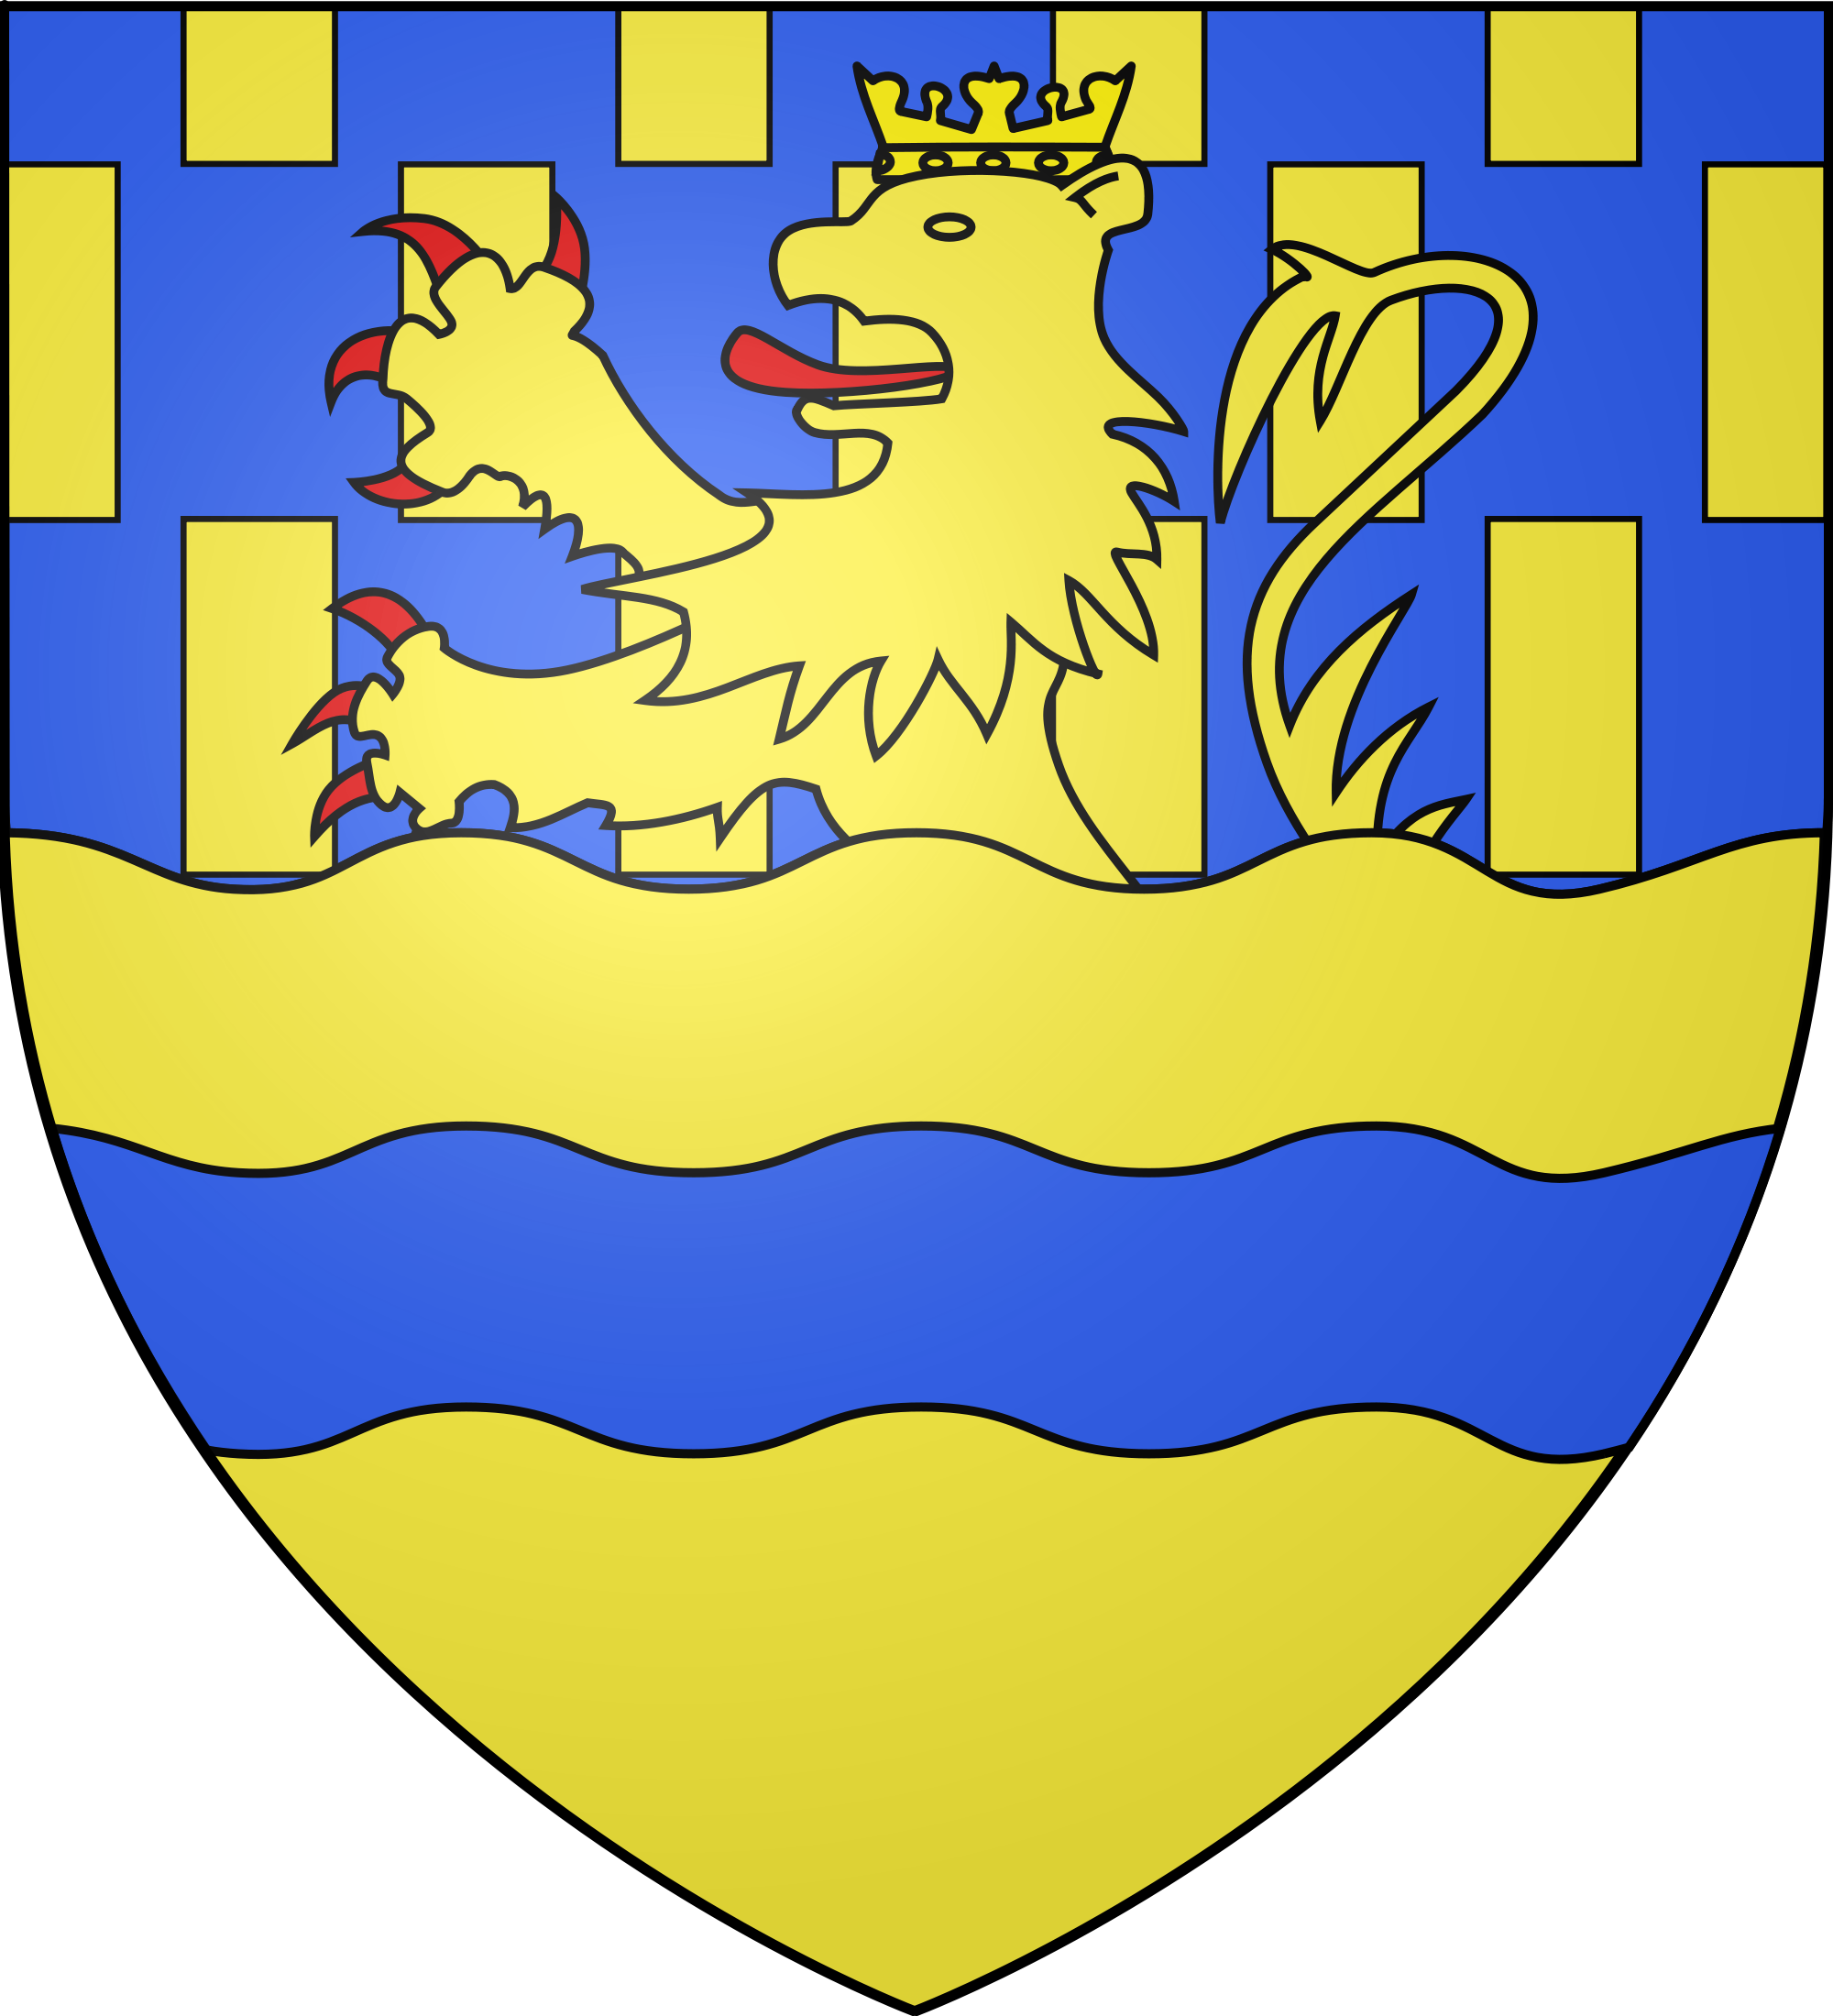 File:Blason département fr Doubs.svg.